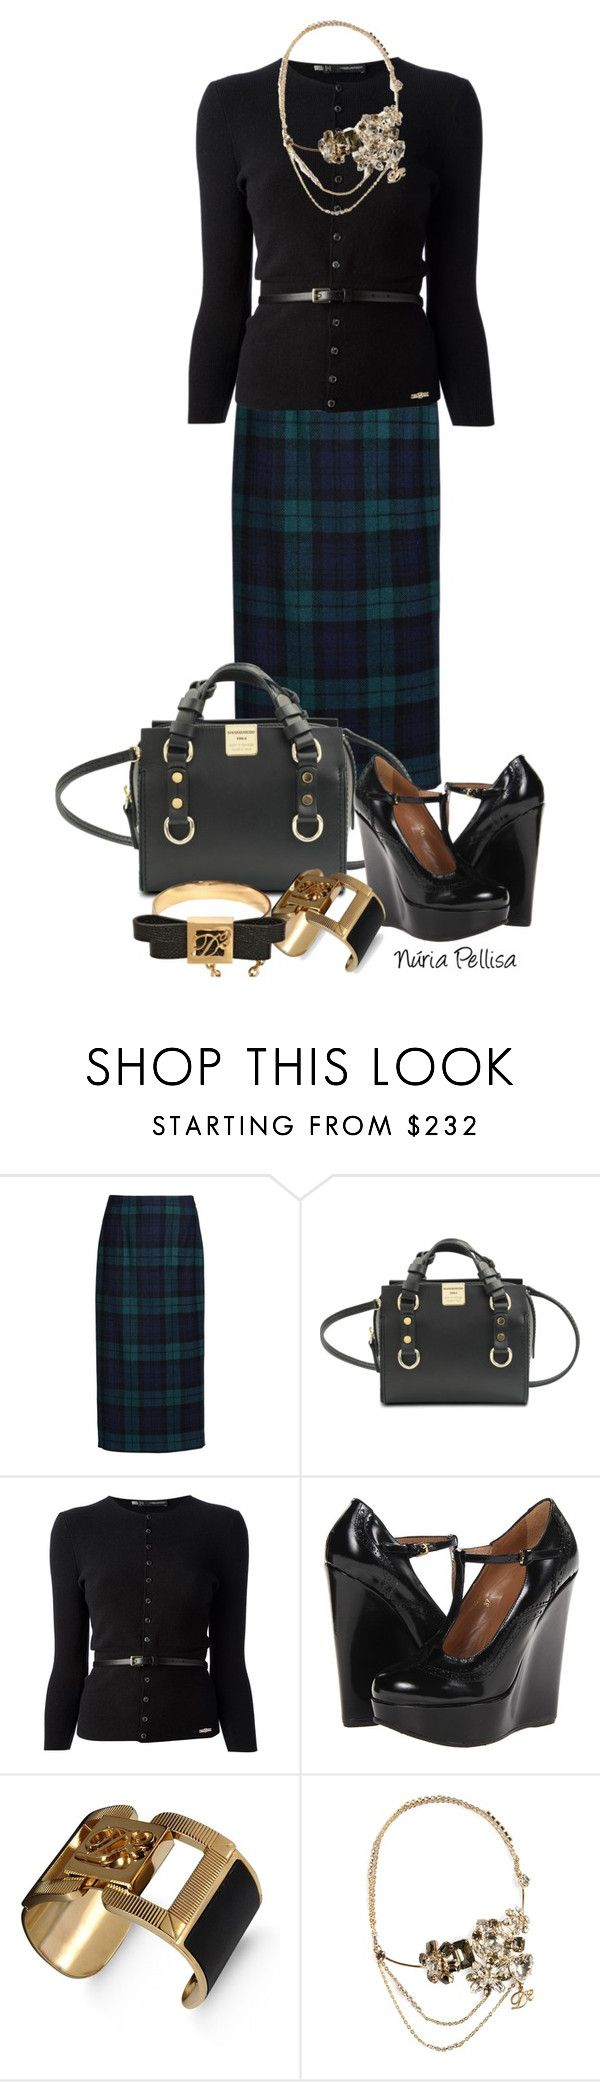 """Dsquared2"" by nuria-pellisa-salvado ❤ liked on Polyvore featuring Dsquared2, WorkWear and fallfashion"